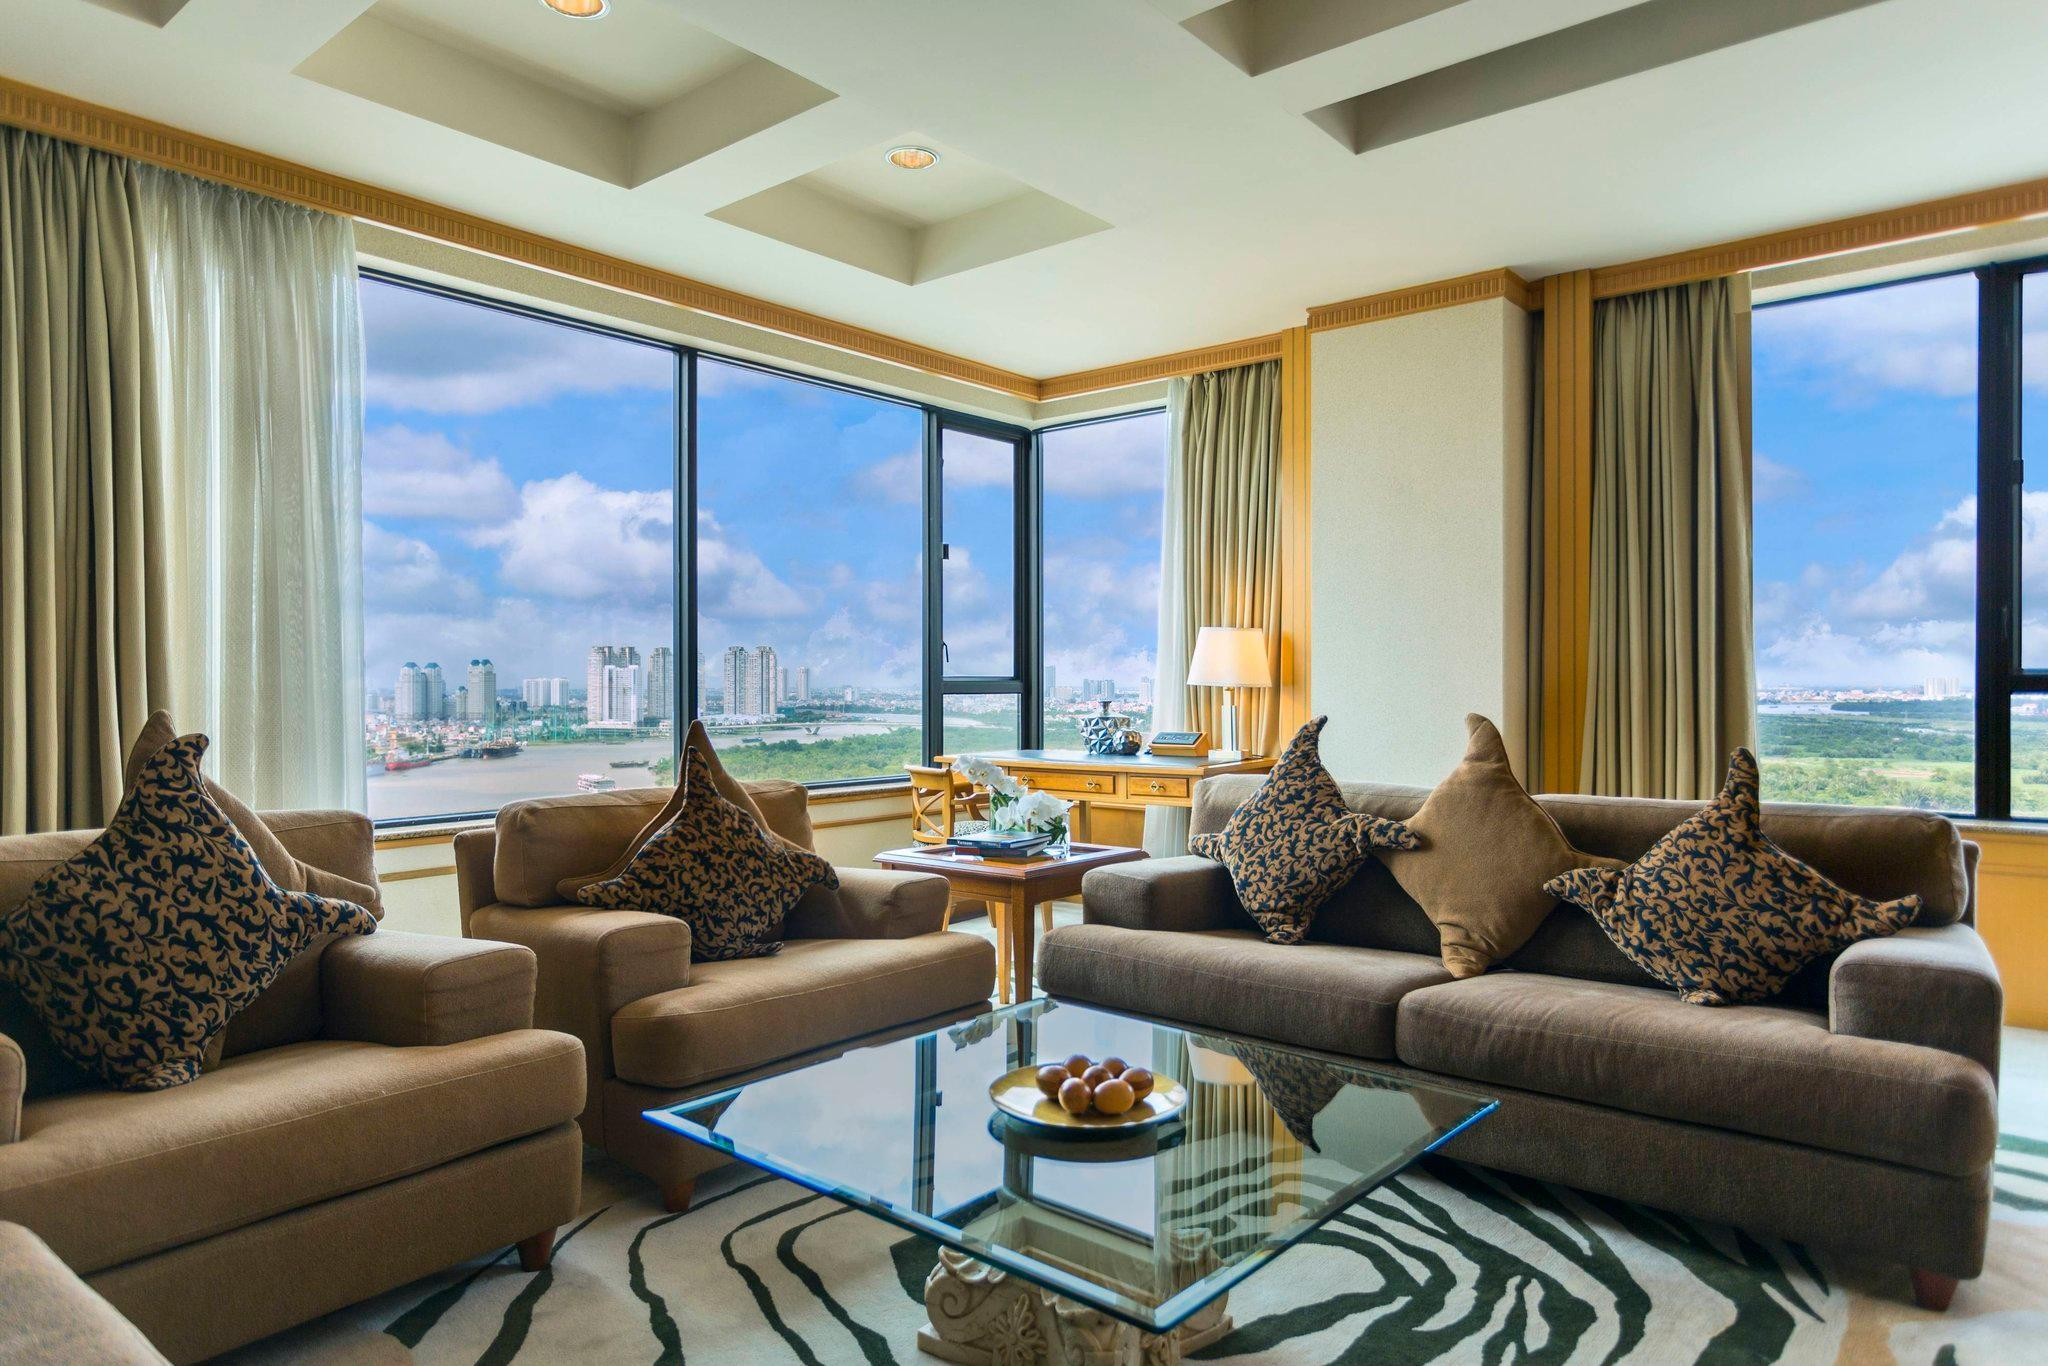 1 Bedroom Presidential Suite, Club level, 1 King